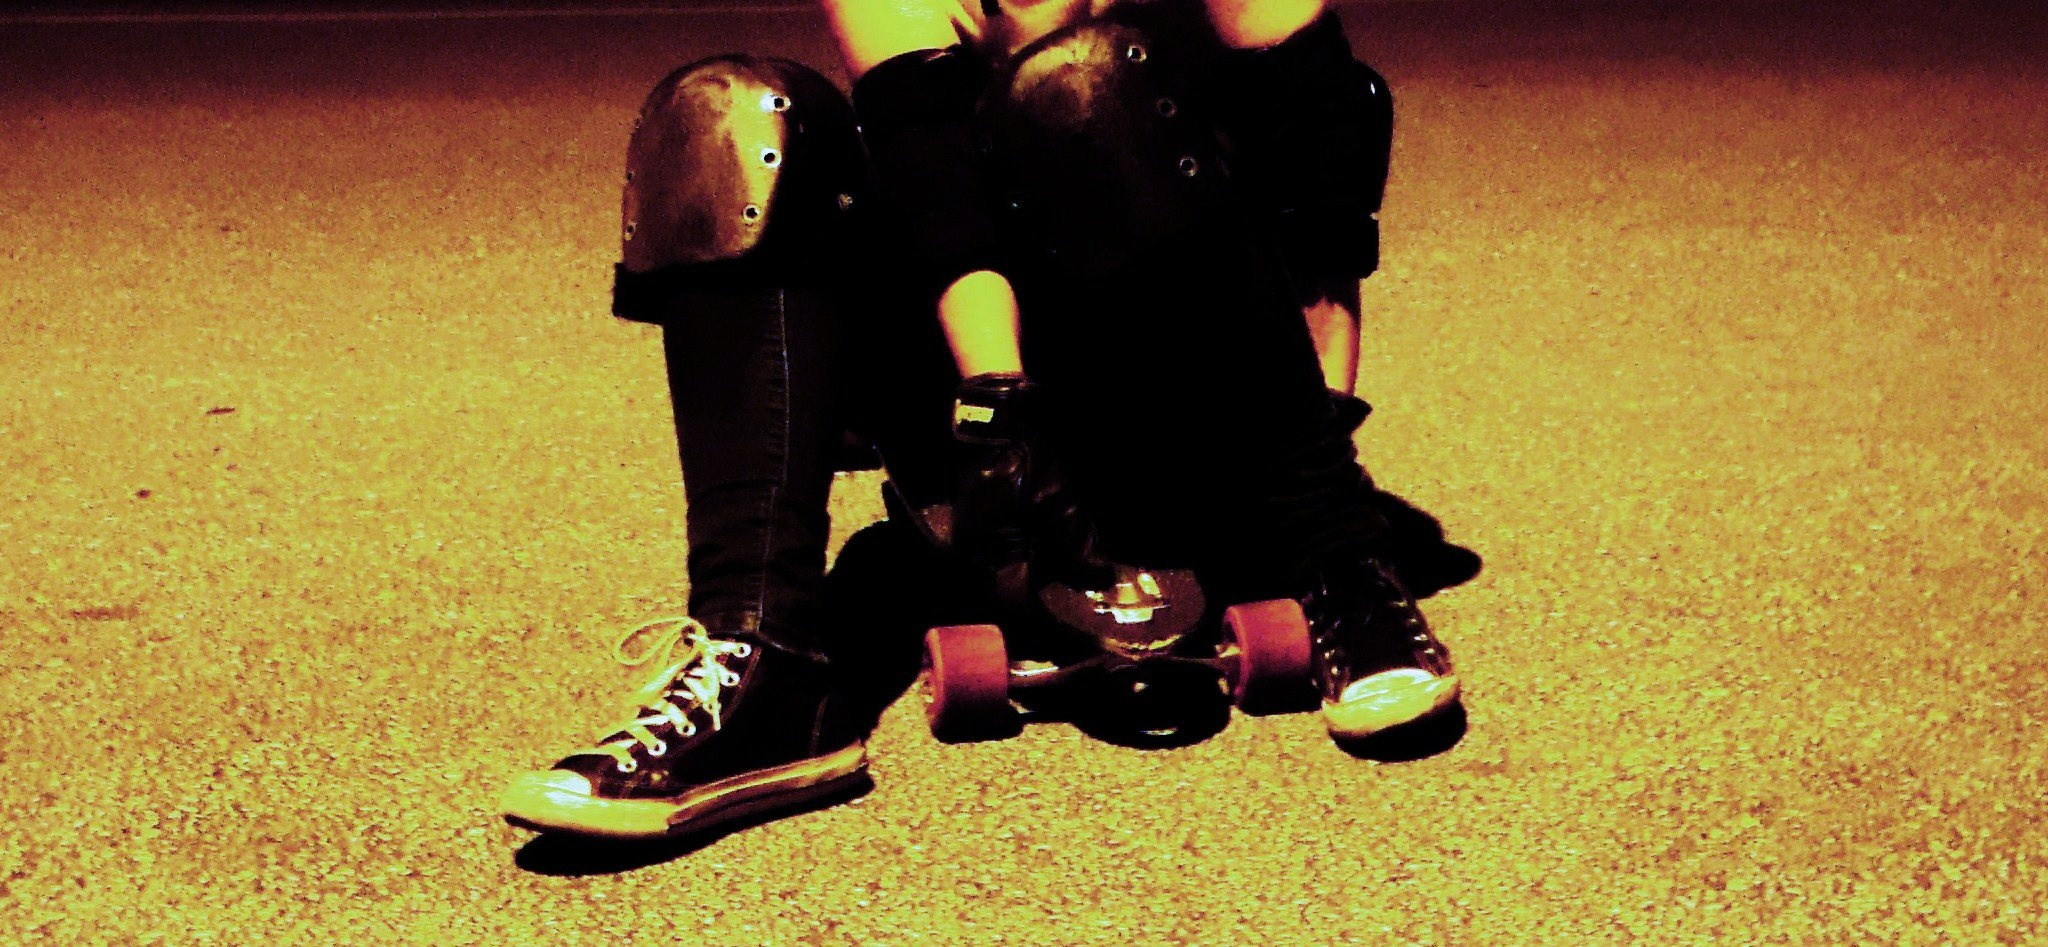 3am Witching Hour Freestyle Longboarding by ButterBee